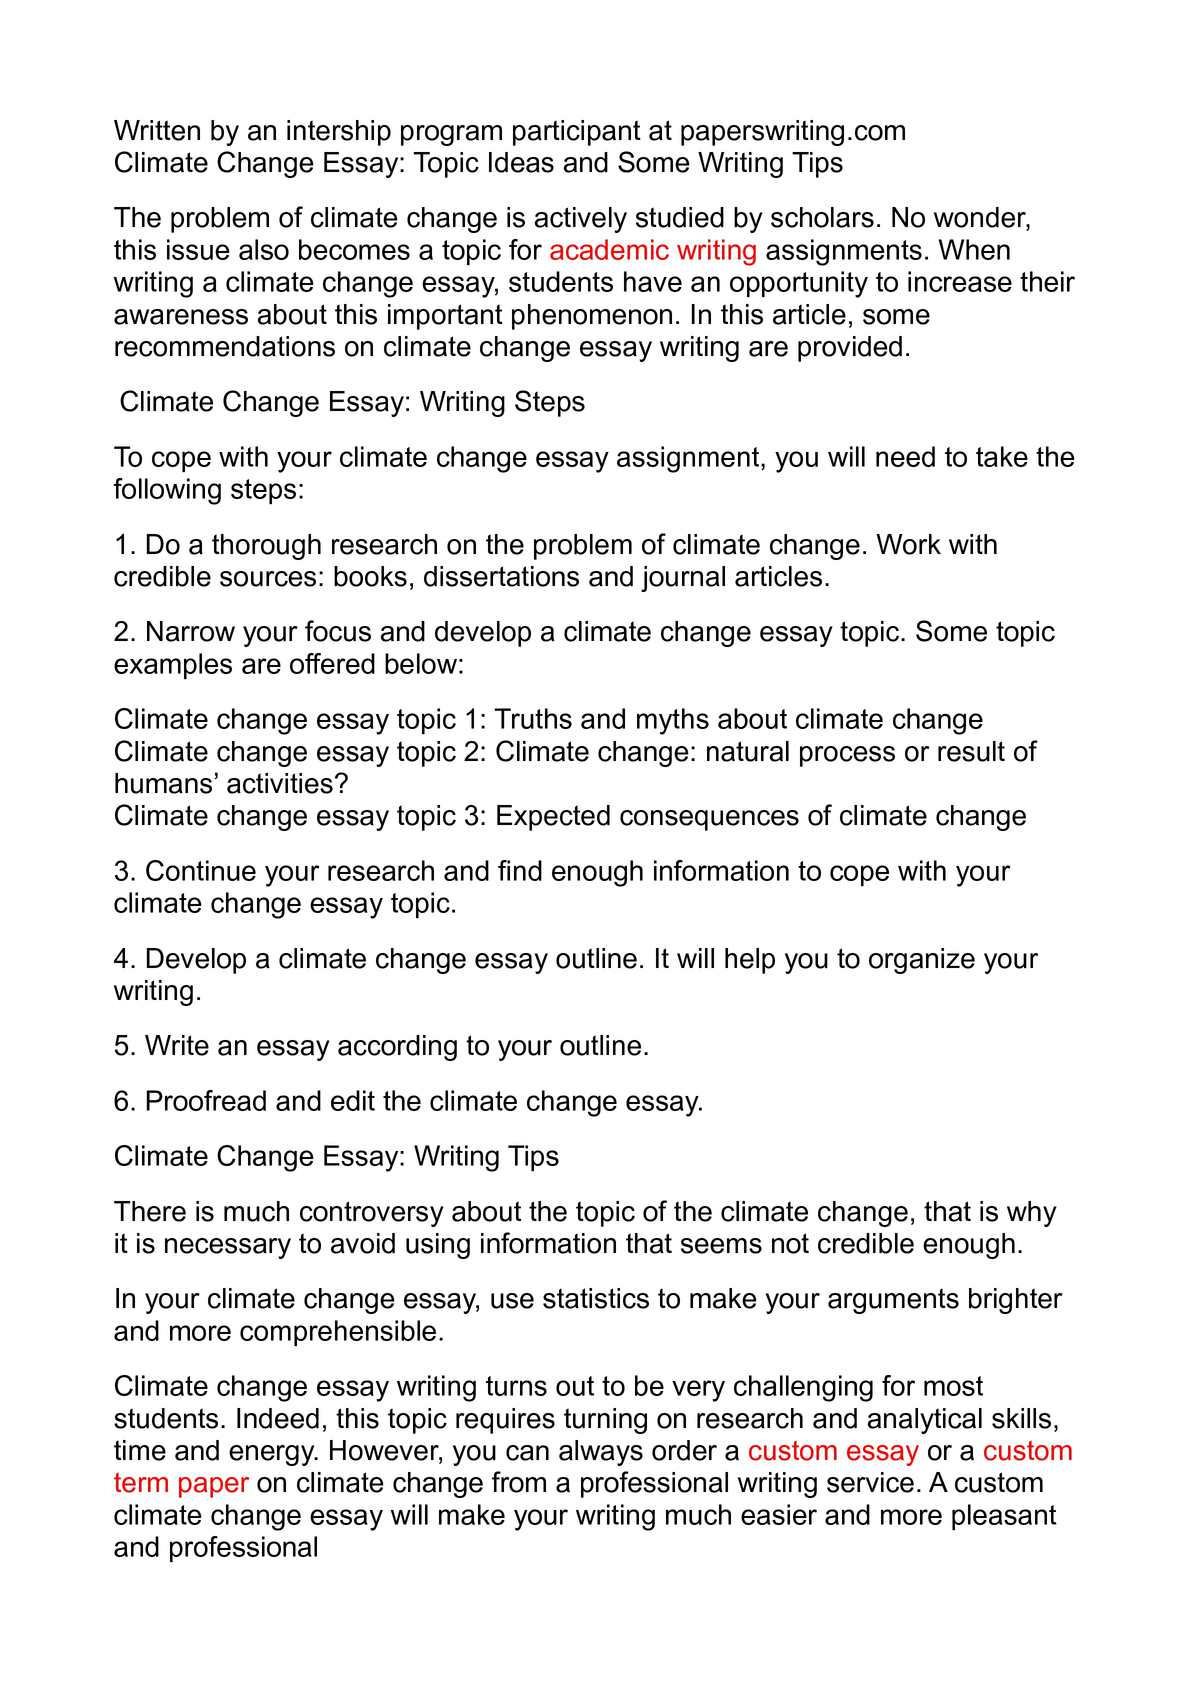 essay edit calam eacute o climate change essay topic ideas and  calam eacute o climate change essay topic ideas and some writing tips